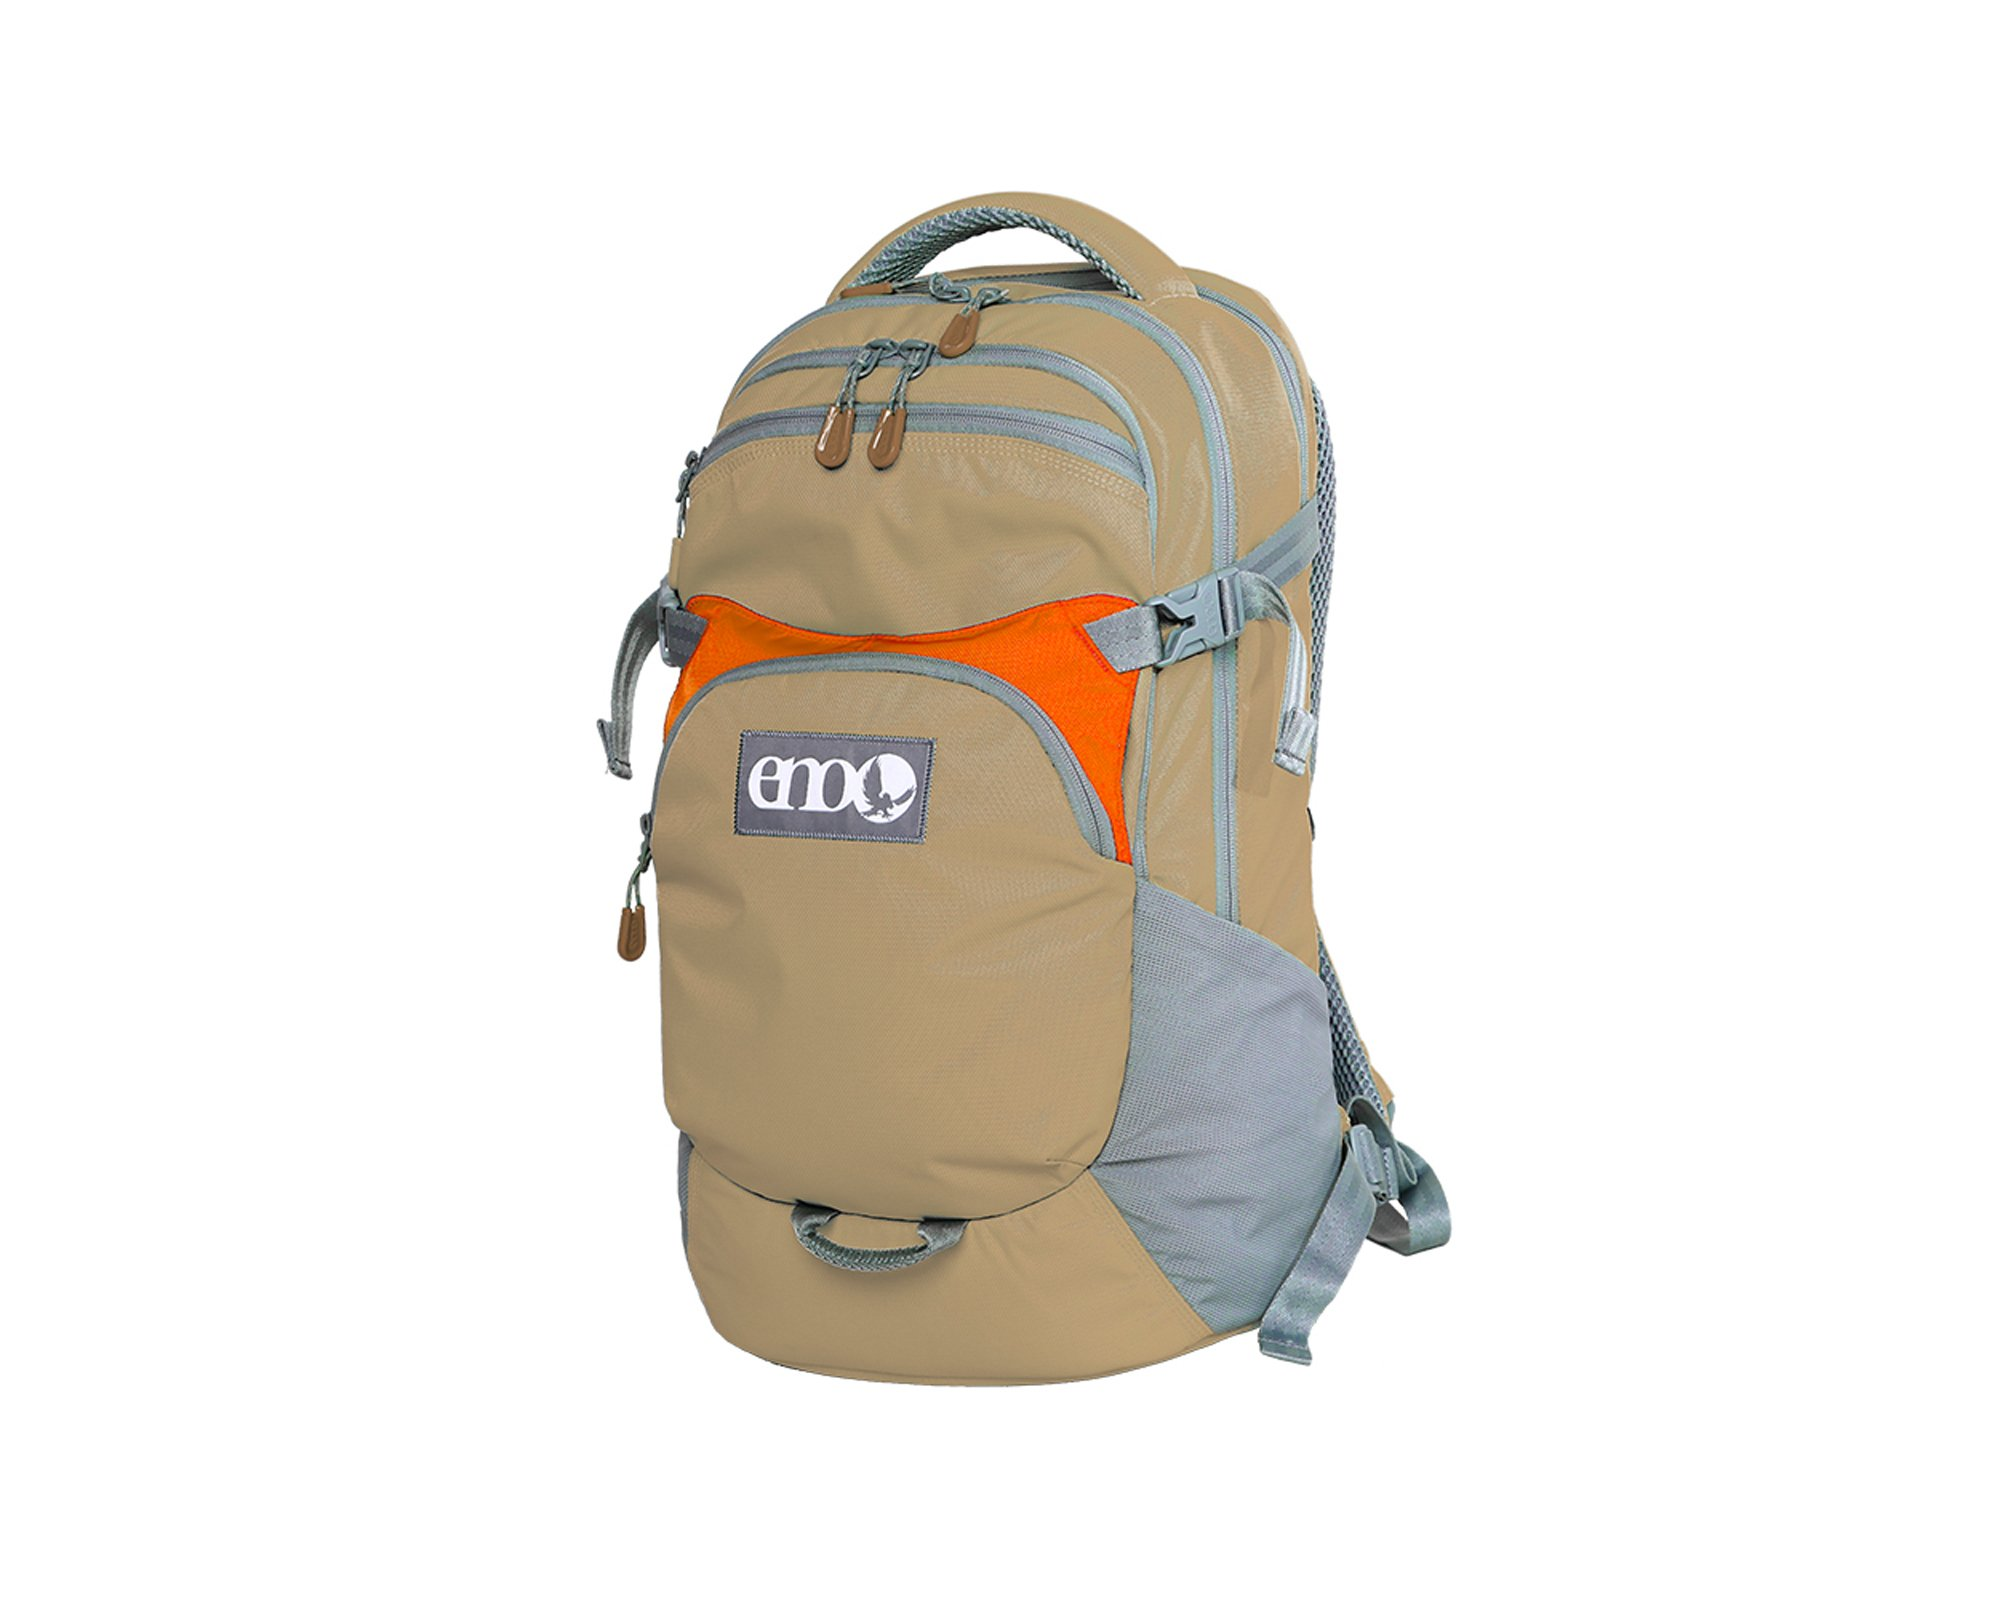 Eagles Nest Outfitters ENO Rothbury Backpack, Khaki/Orange by Eagles Nest Outfitters